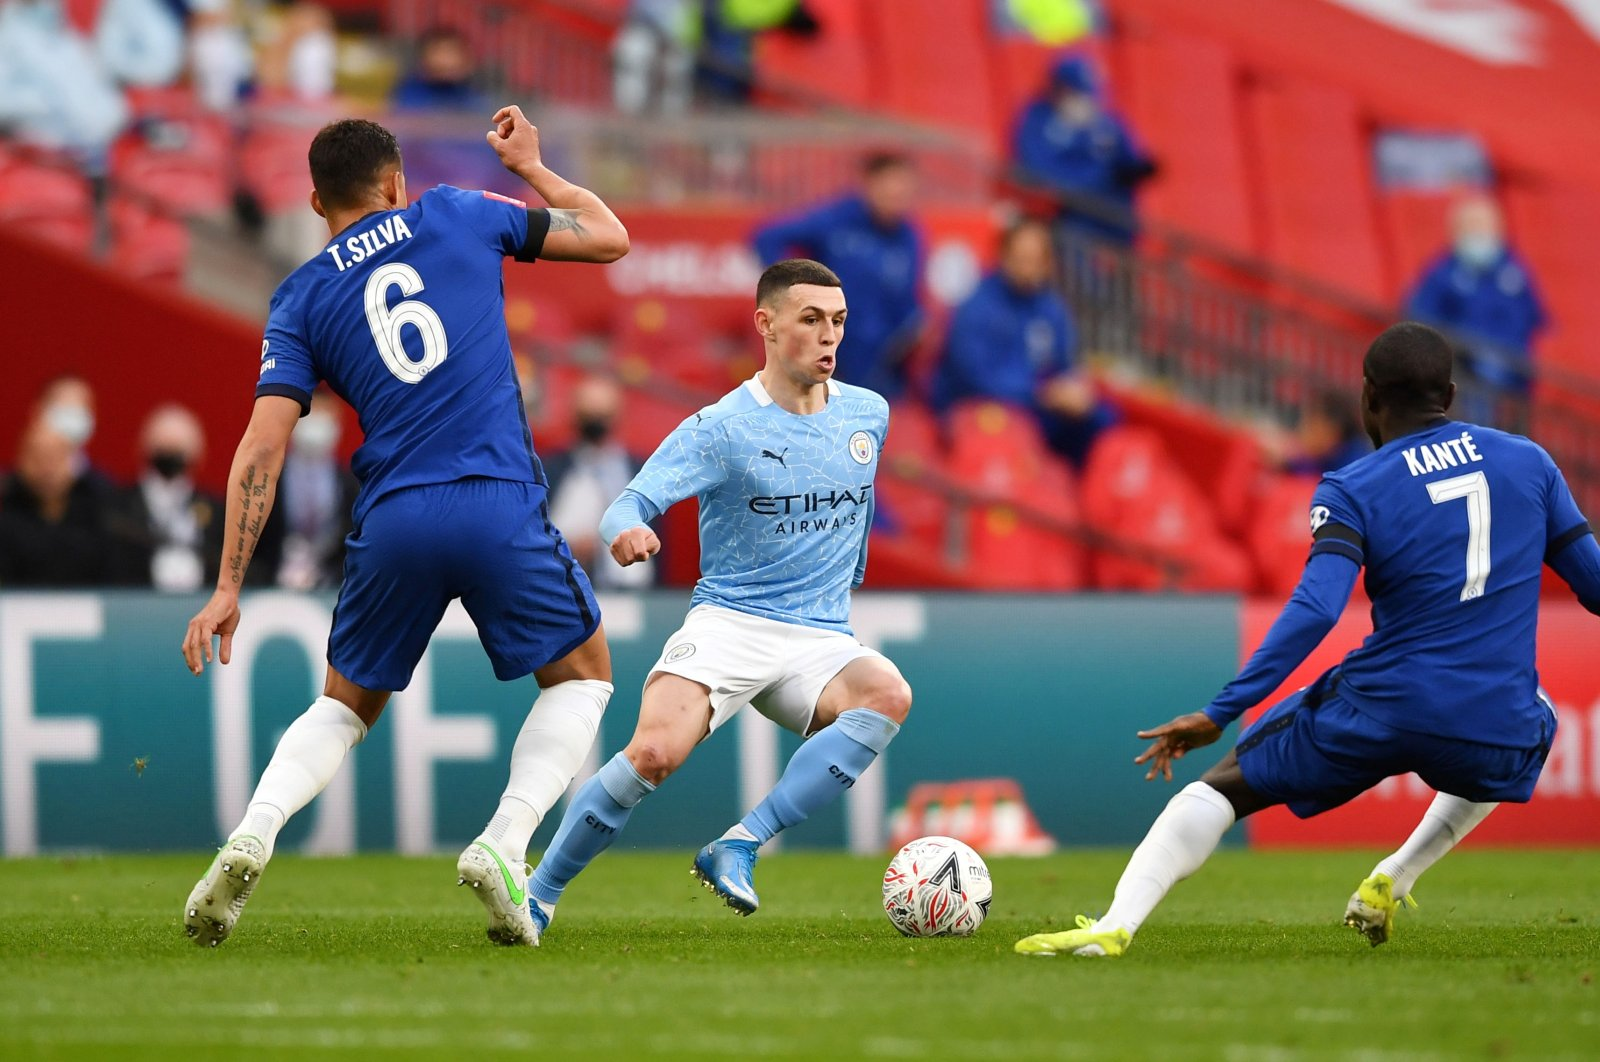 Manchester City's Phil Foden Pool (C) in action during a FA Cup semifinal match against Chelsea at the Wembley Stadium in London, Britain, April 17, 2021. (Reuters Photo)